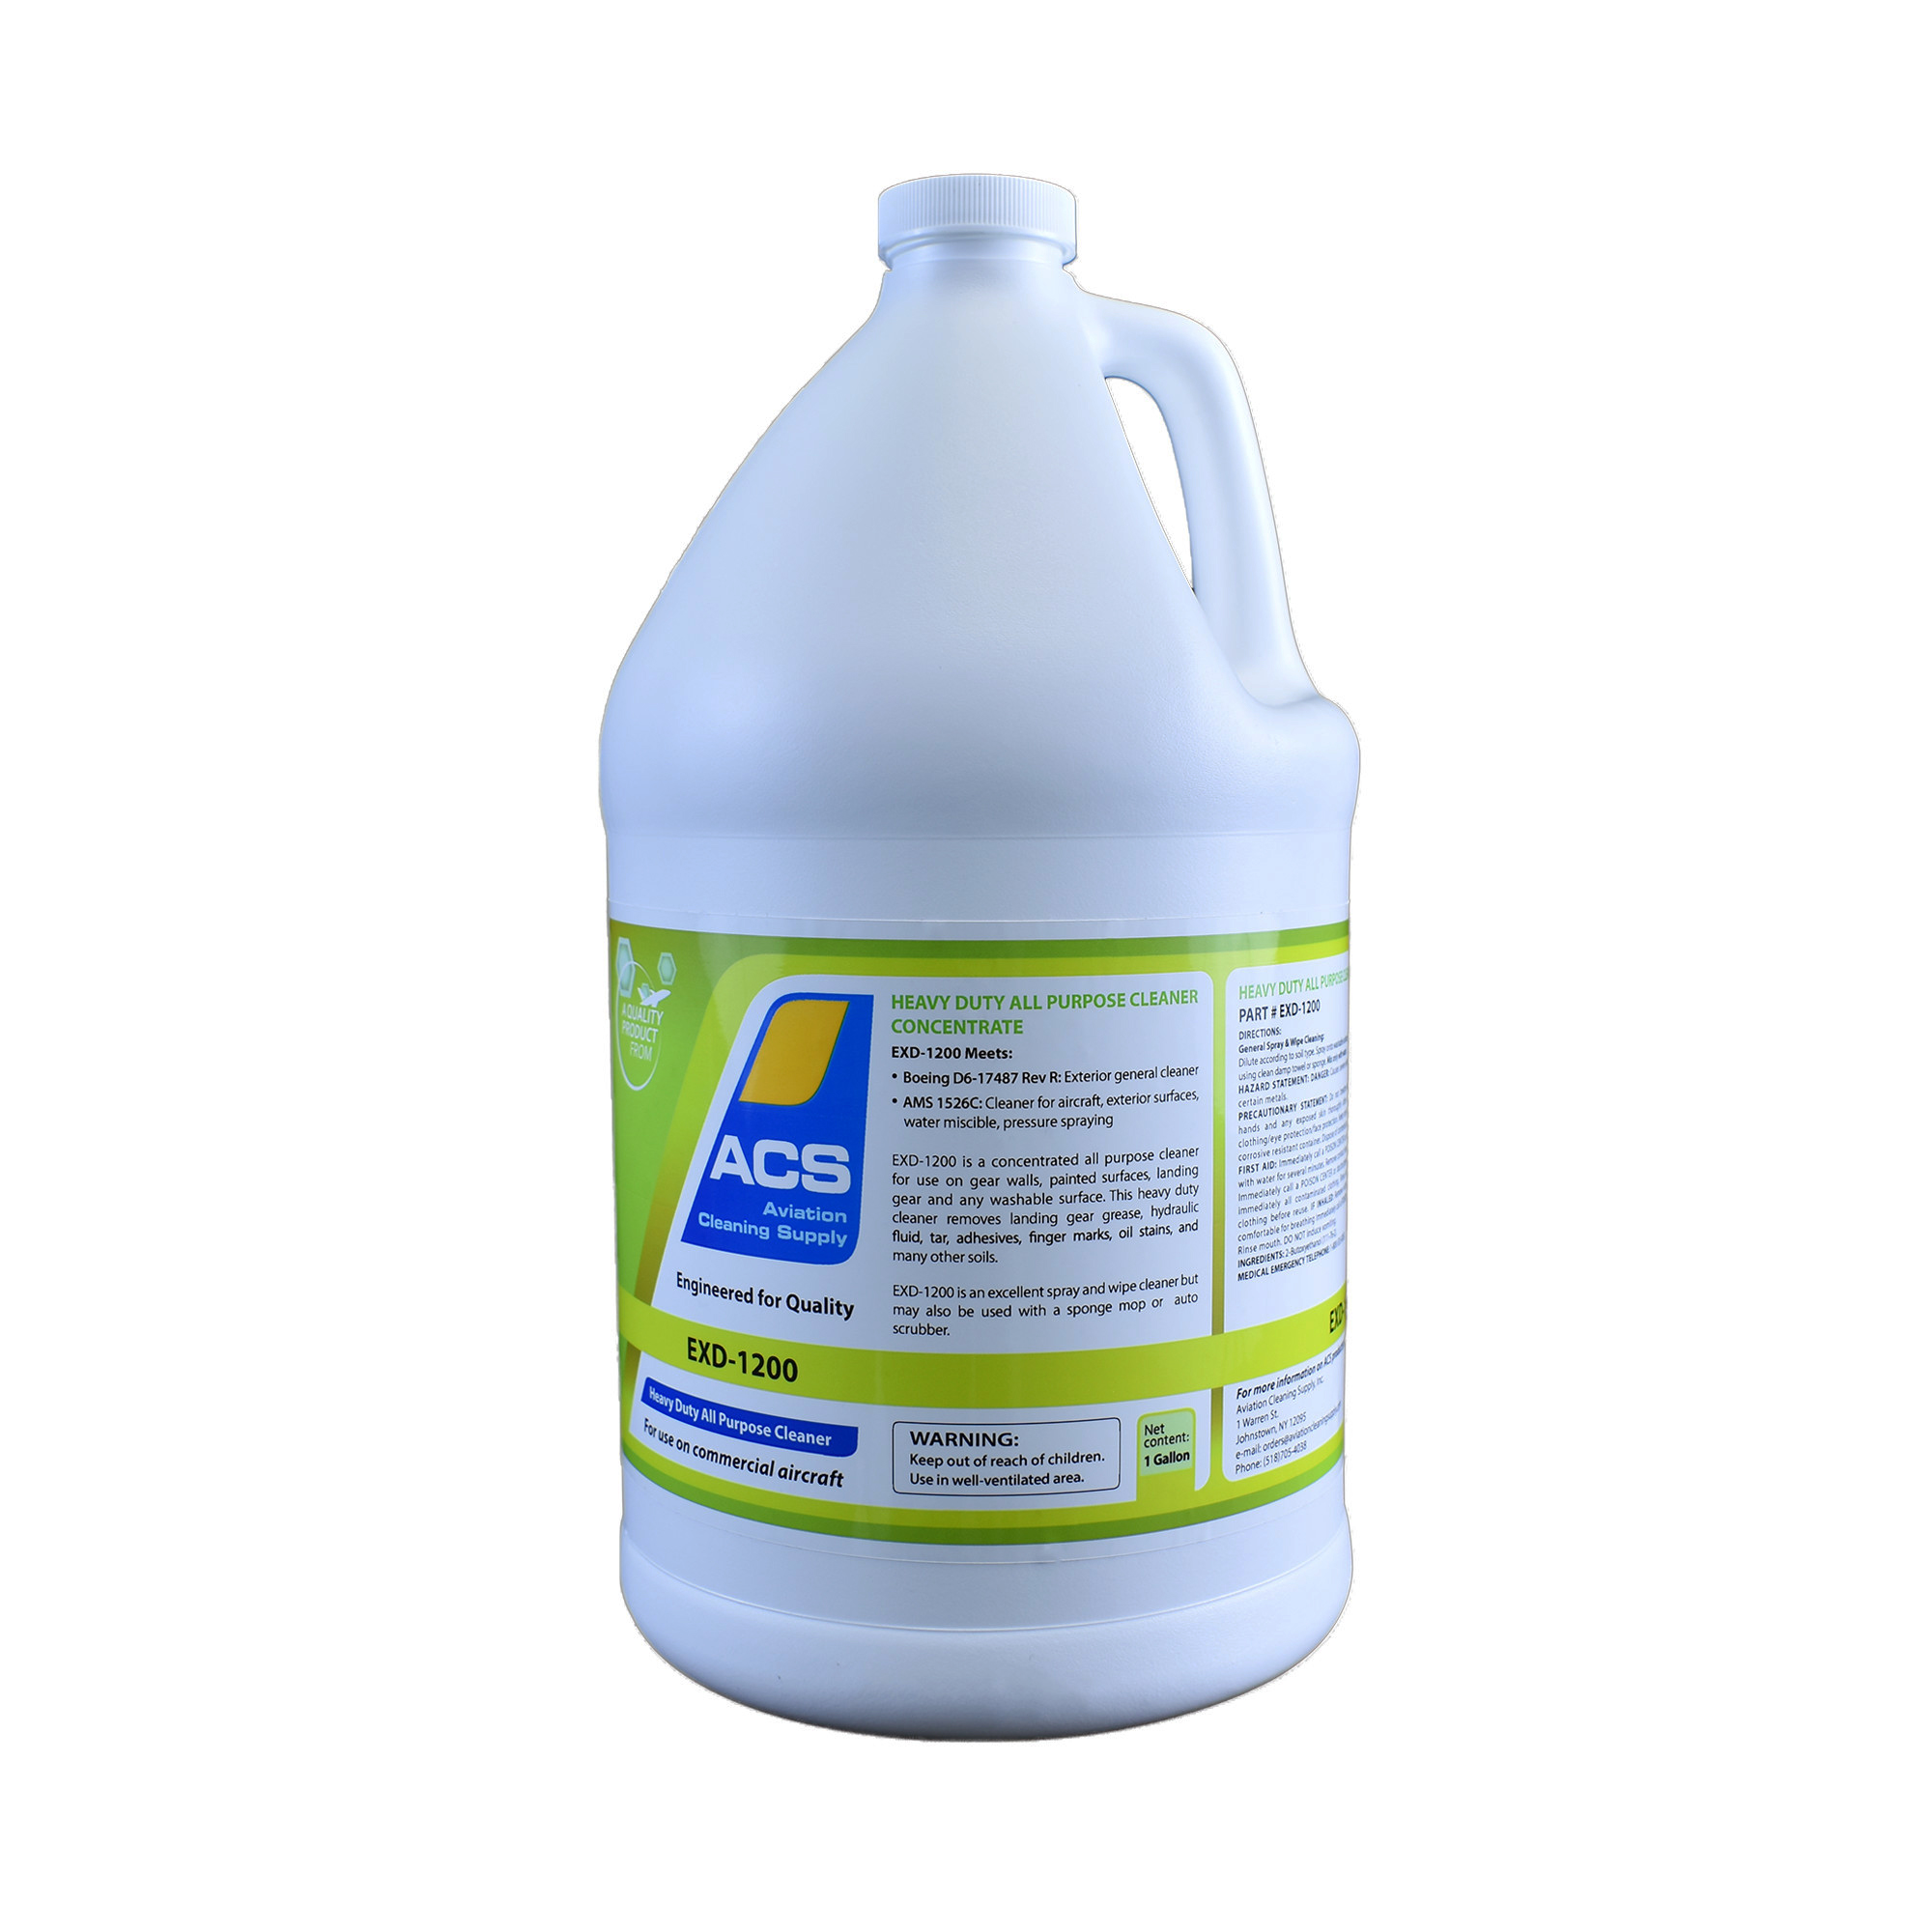 Exd 1200 Heavy Duty All Purpose Cleaner Concentrate Aviation Cleaning Supply